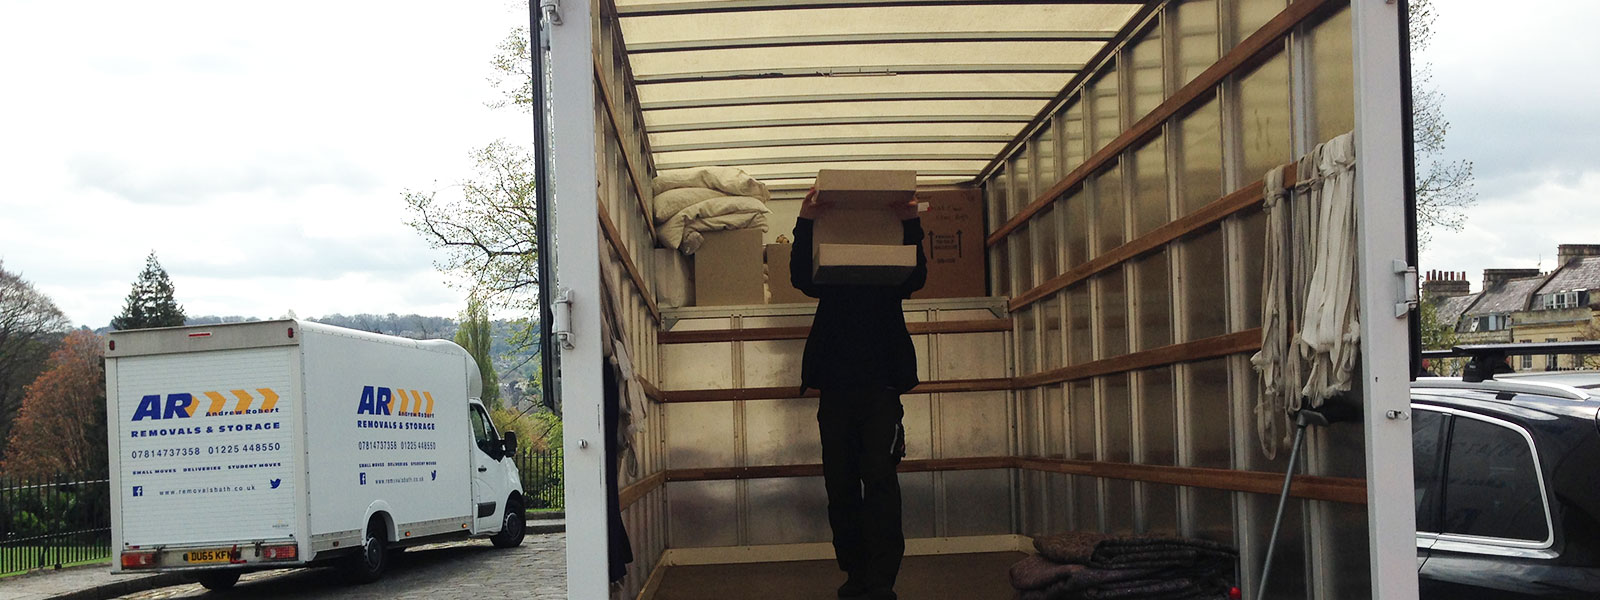 storage southwick near bath a r removals and storage